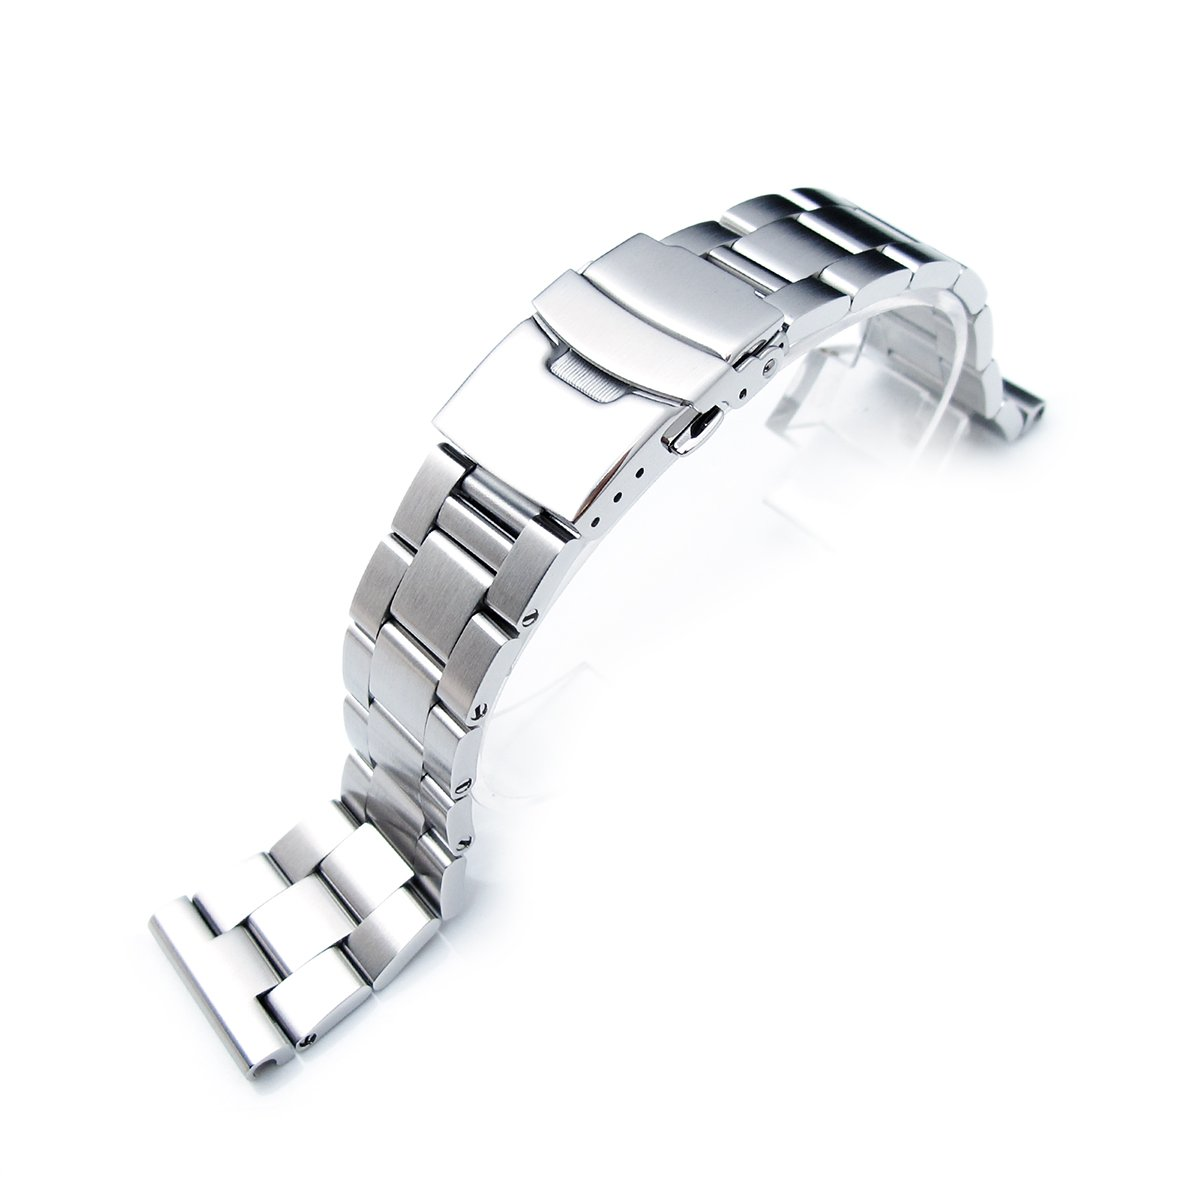 21mm SOLID 316L Stainless Steel Super Oyster Straight End Watch Band